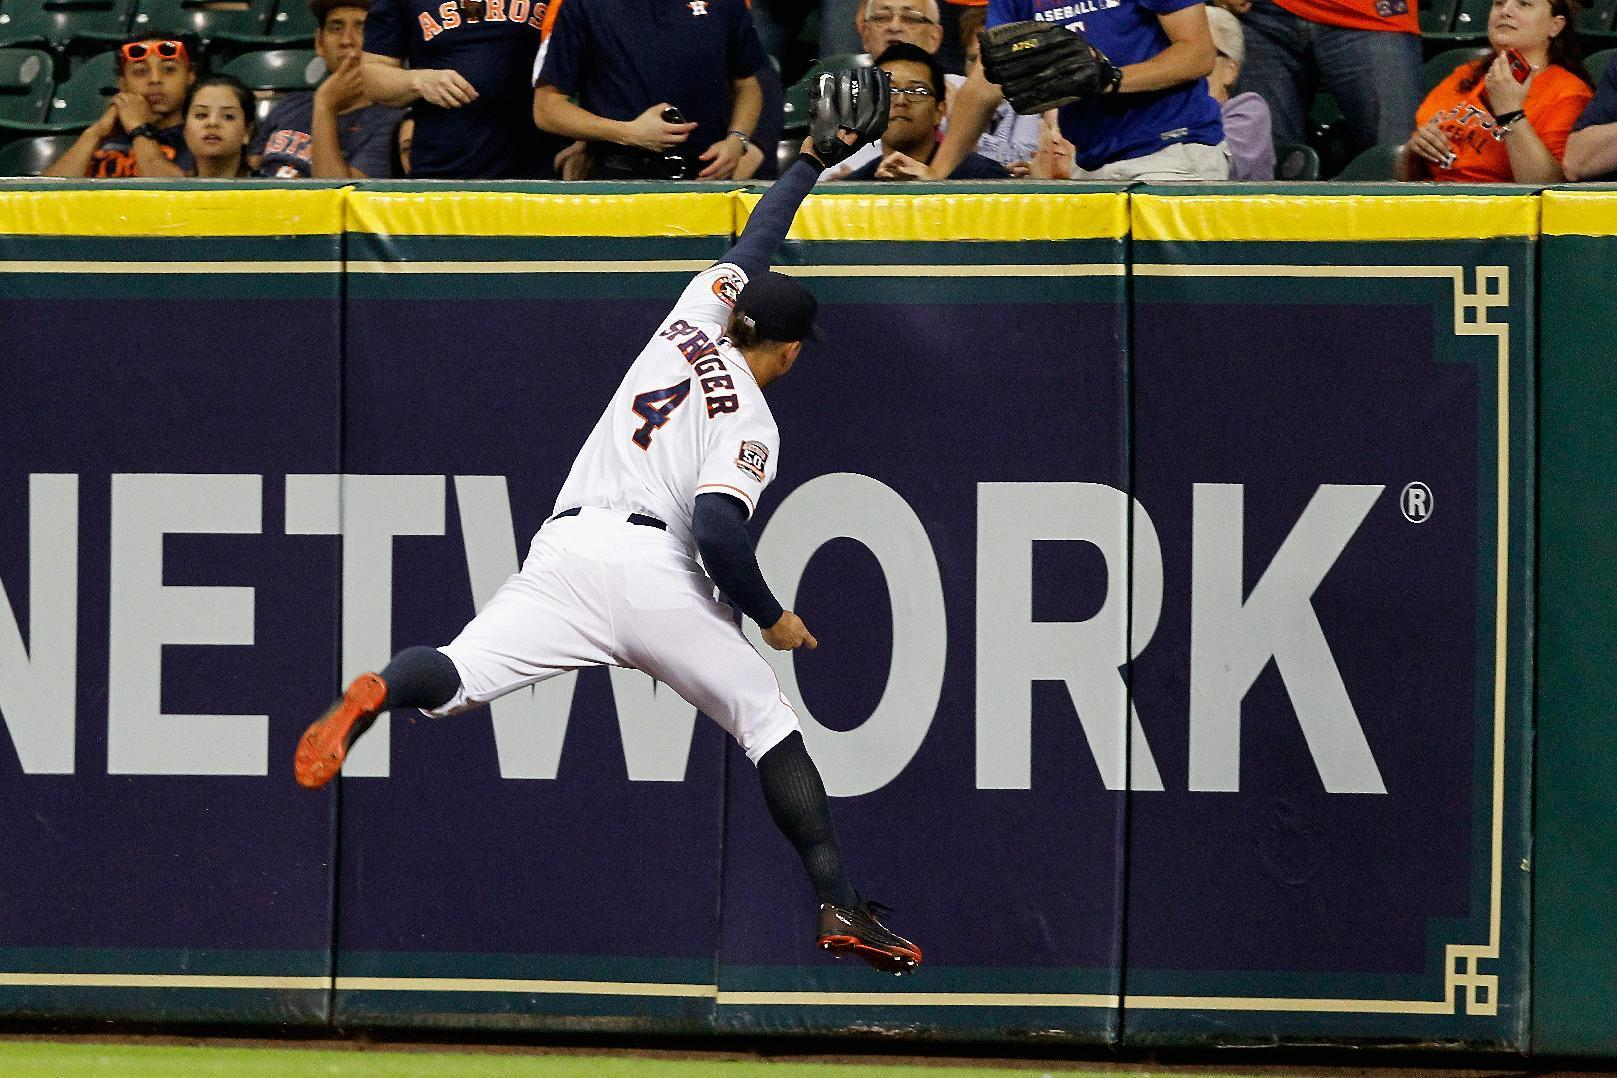 George Springer makes exceptional catch while slamming into outfield wall